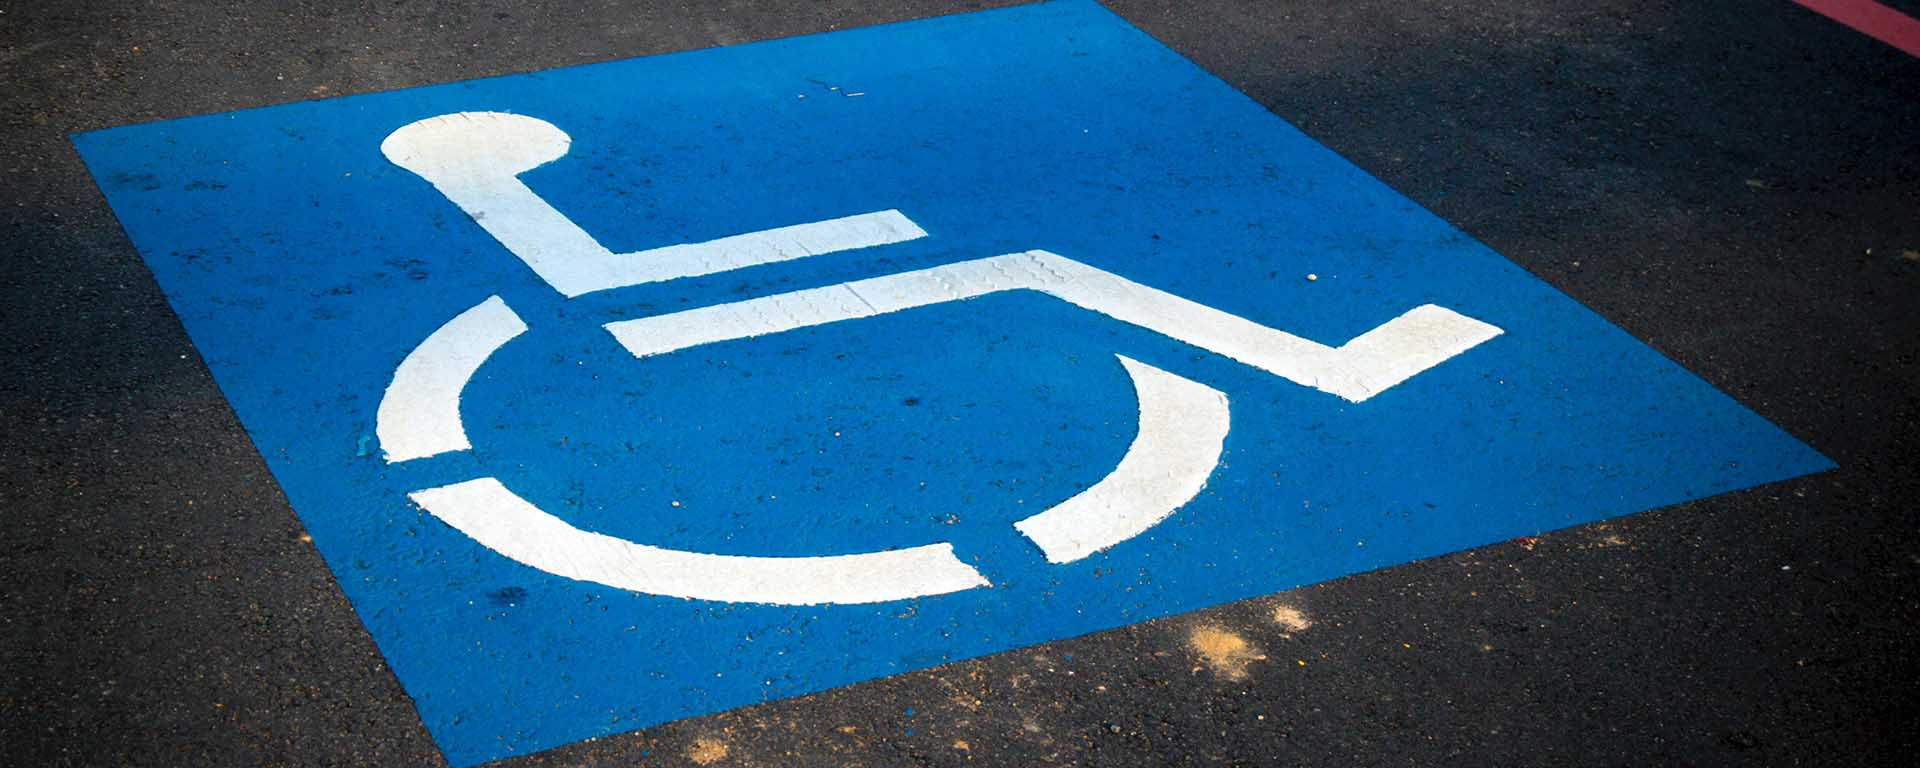 Disability parking sign on the road, showing a picture of a wheelchair